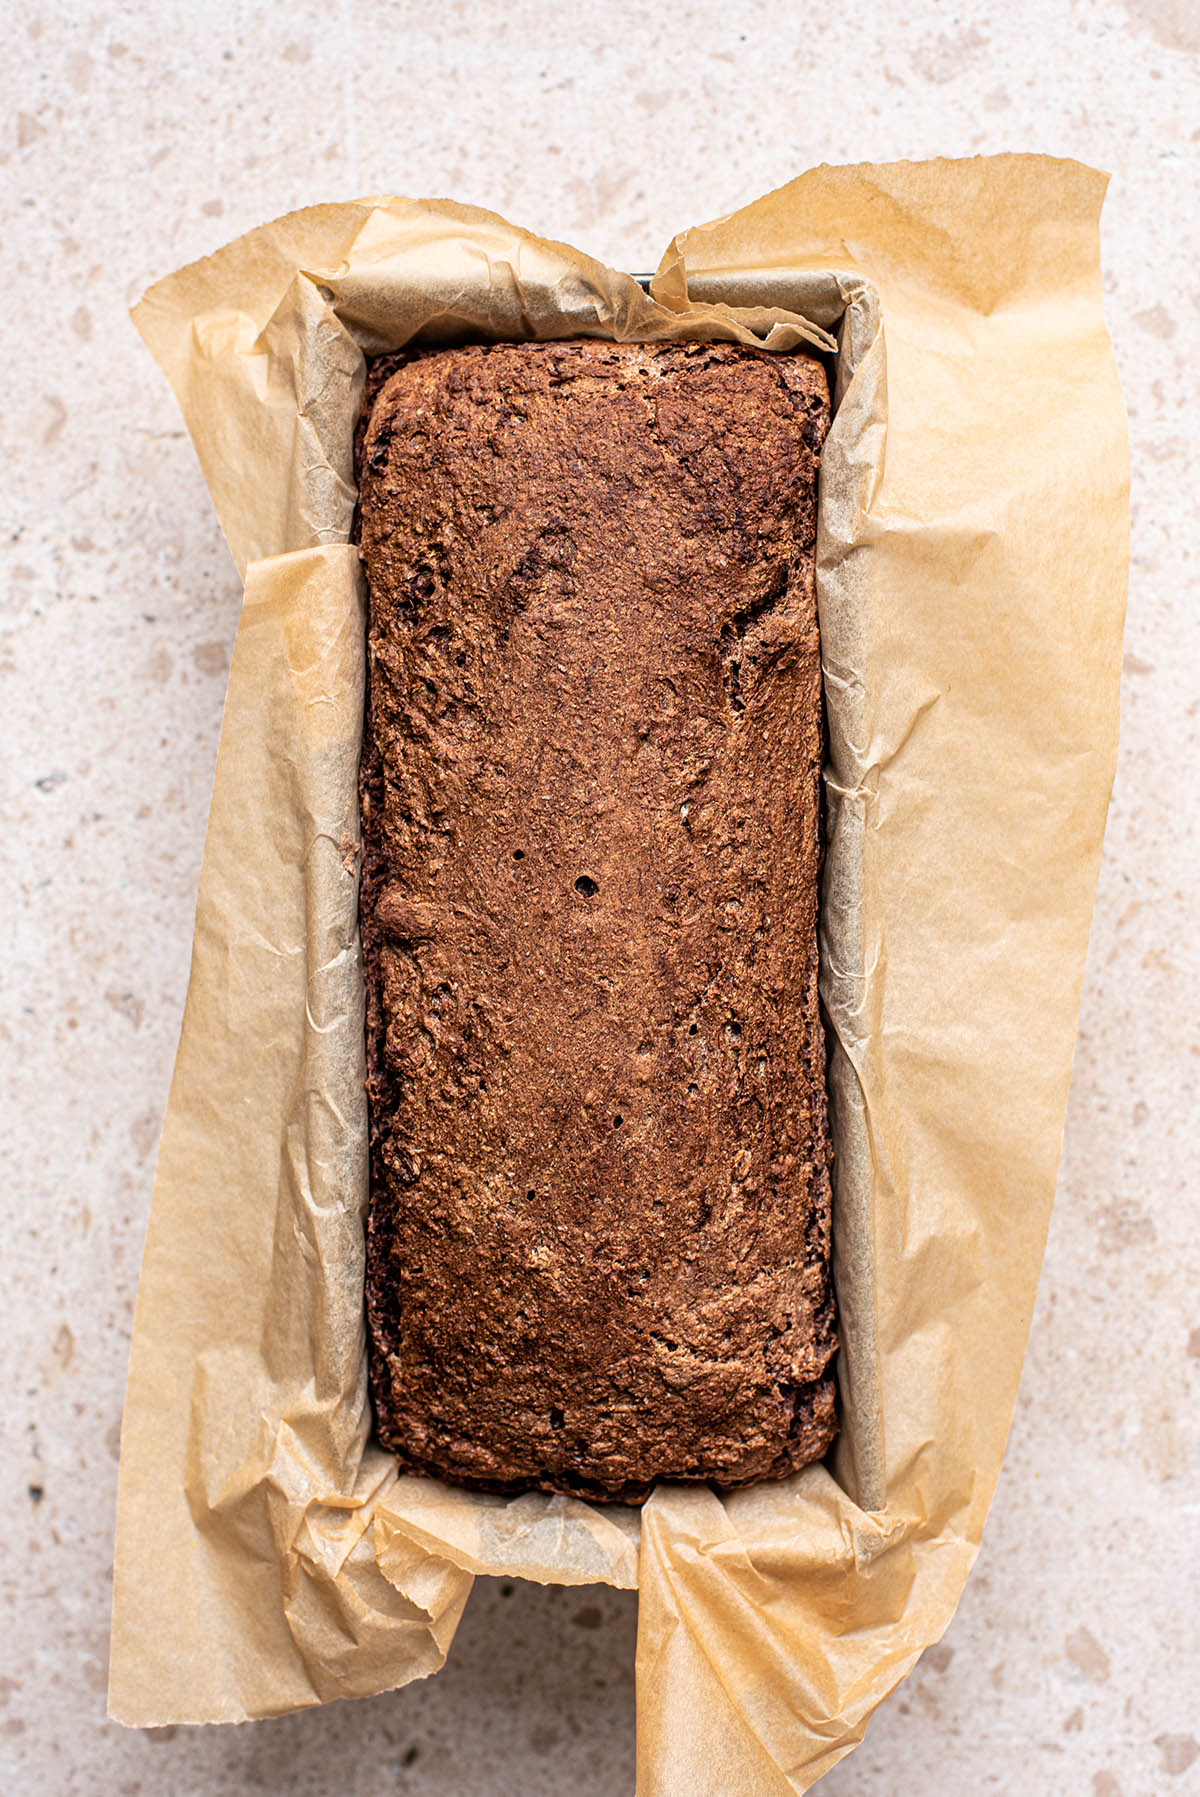 A baked loaf of rye bread in a paper-lined tin.